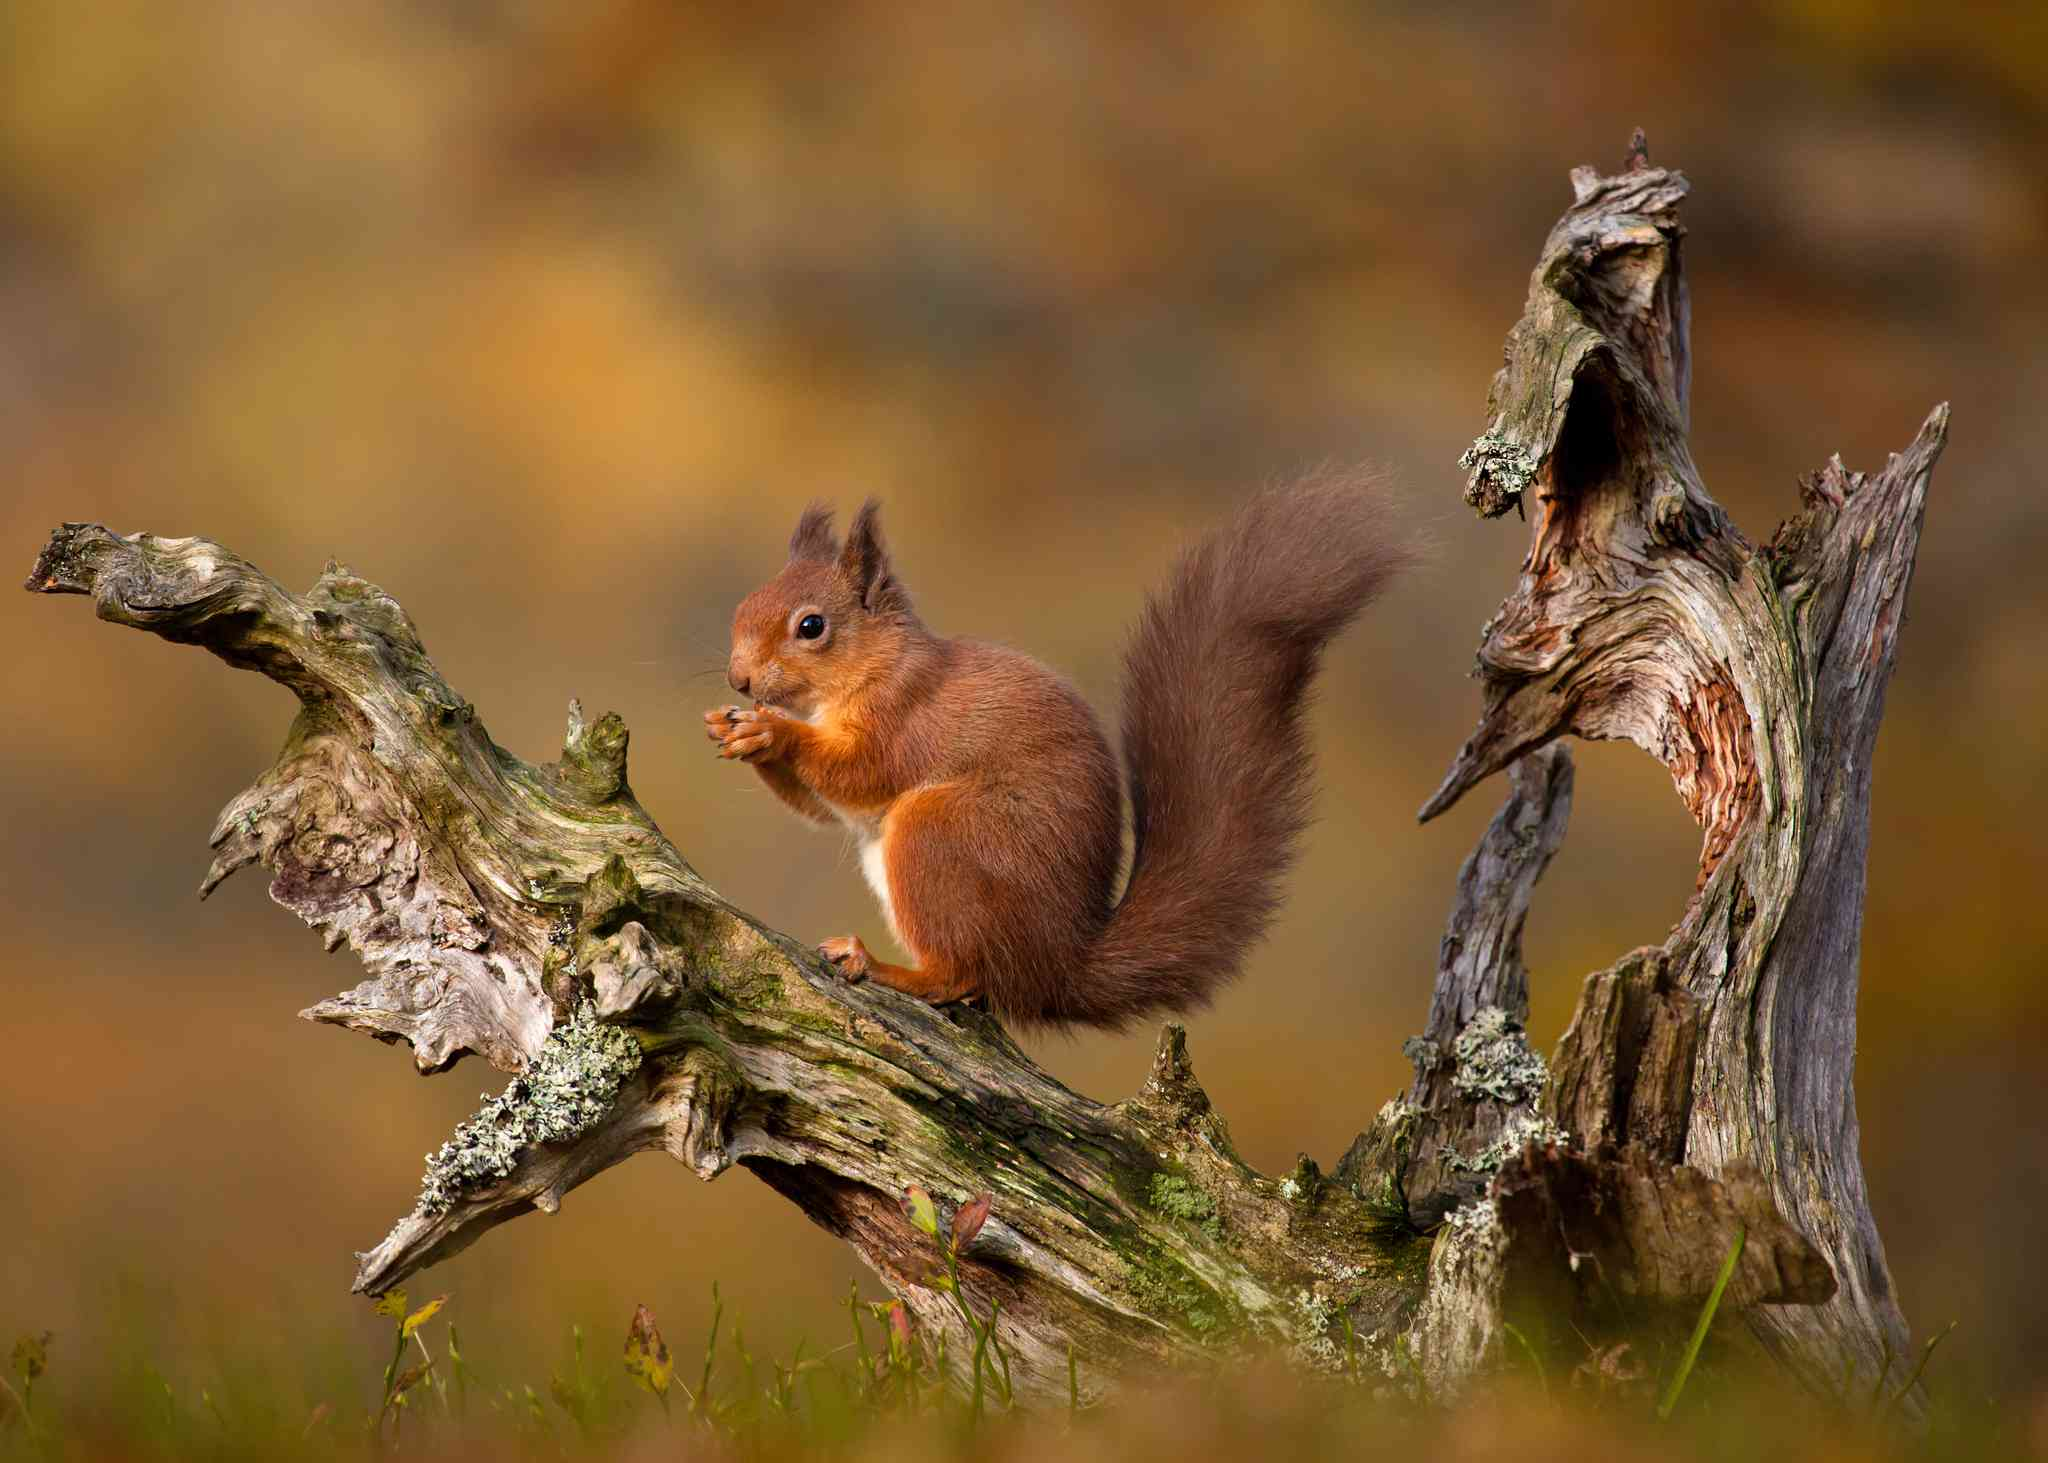 Red squirrel sitting on an old tree stump, UK